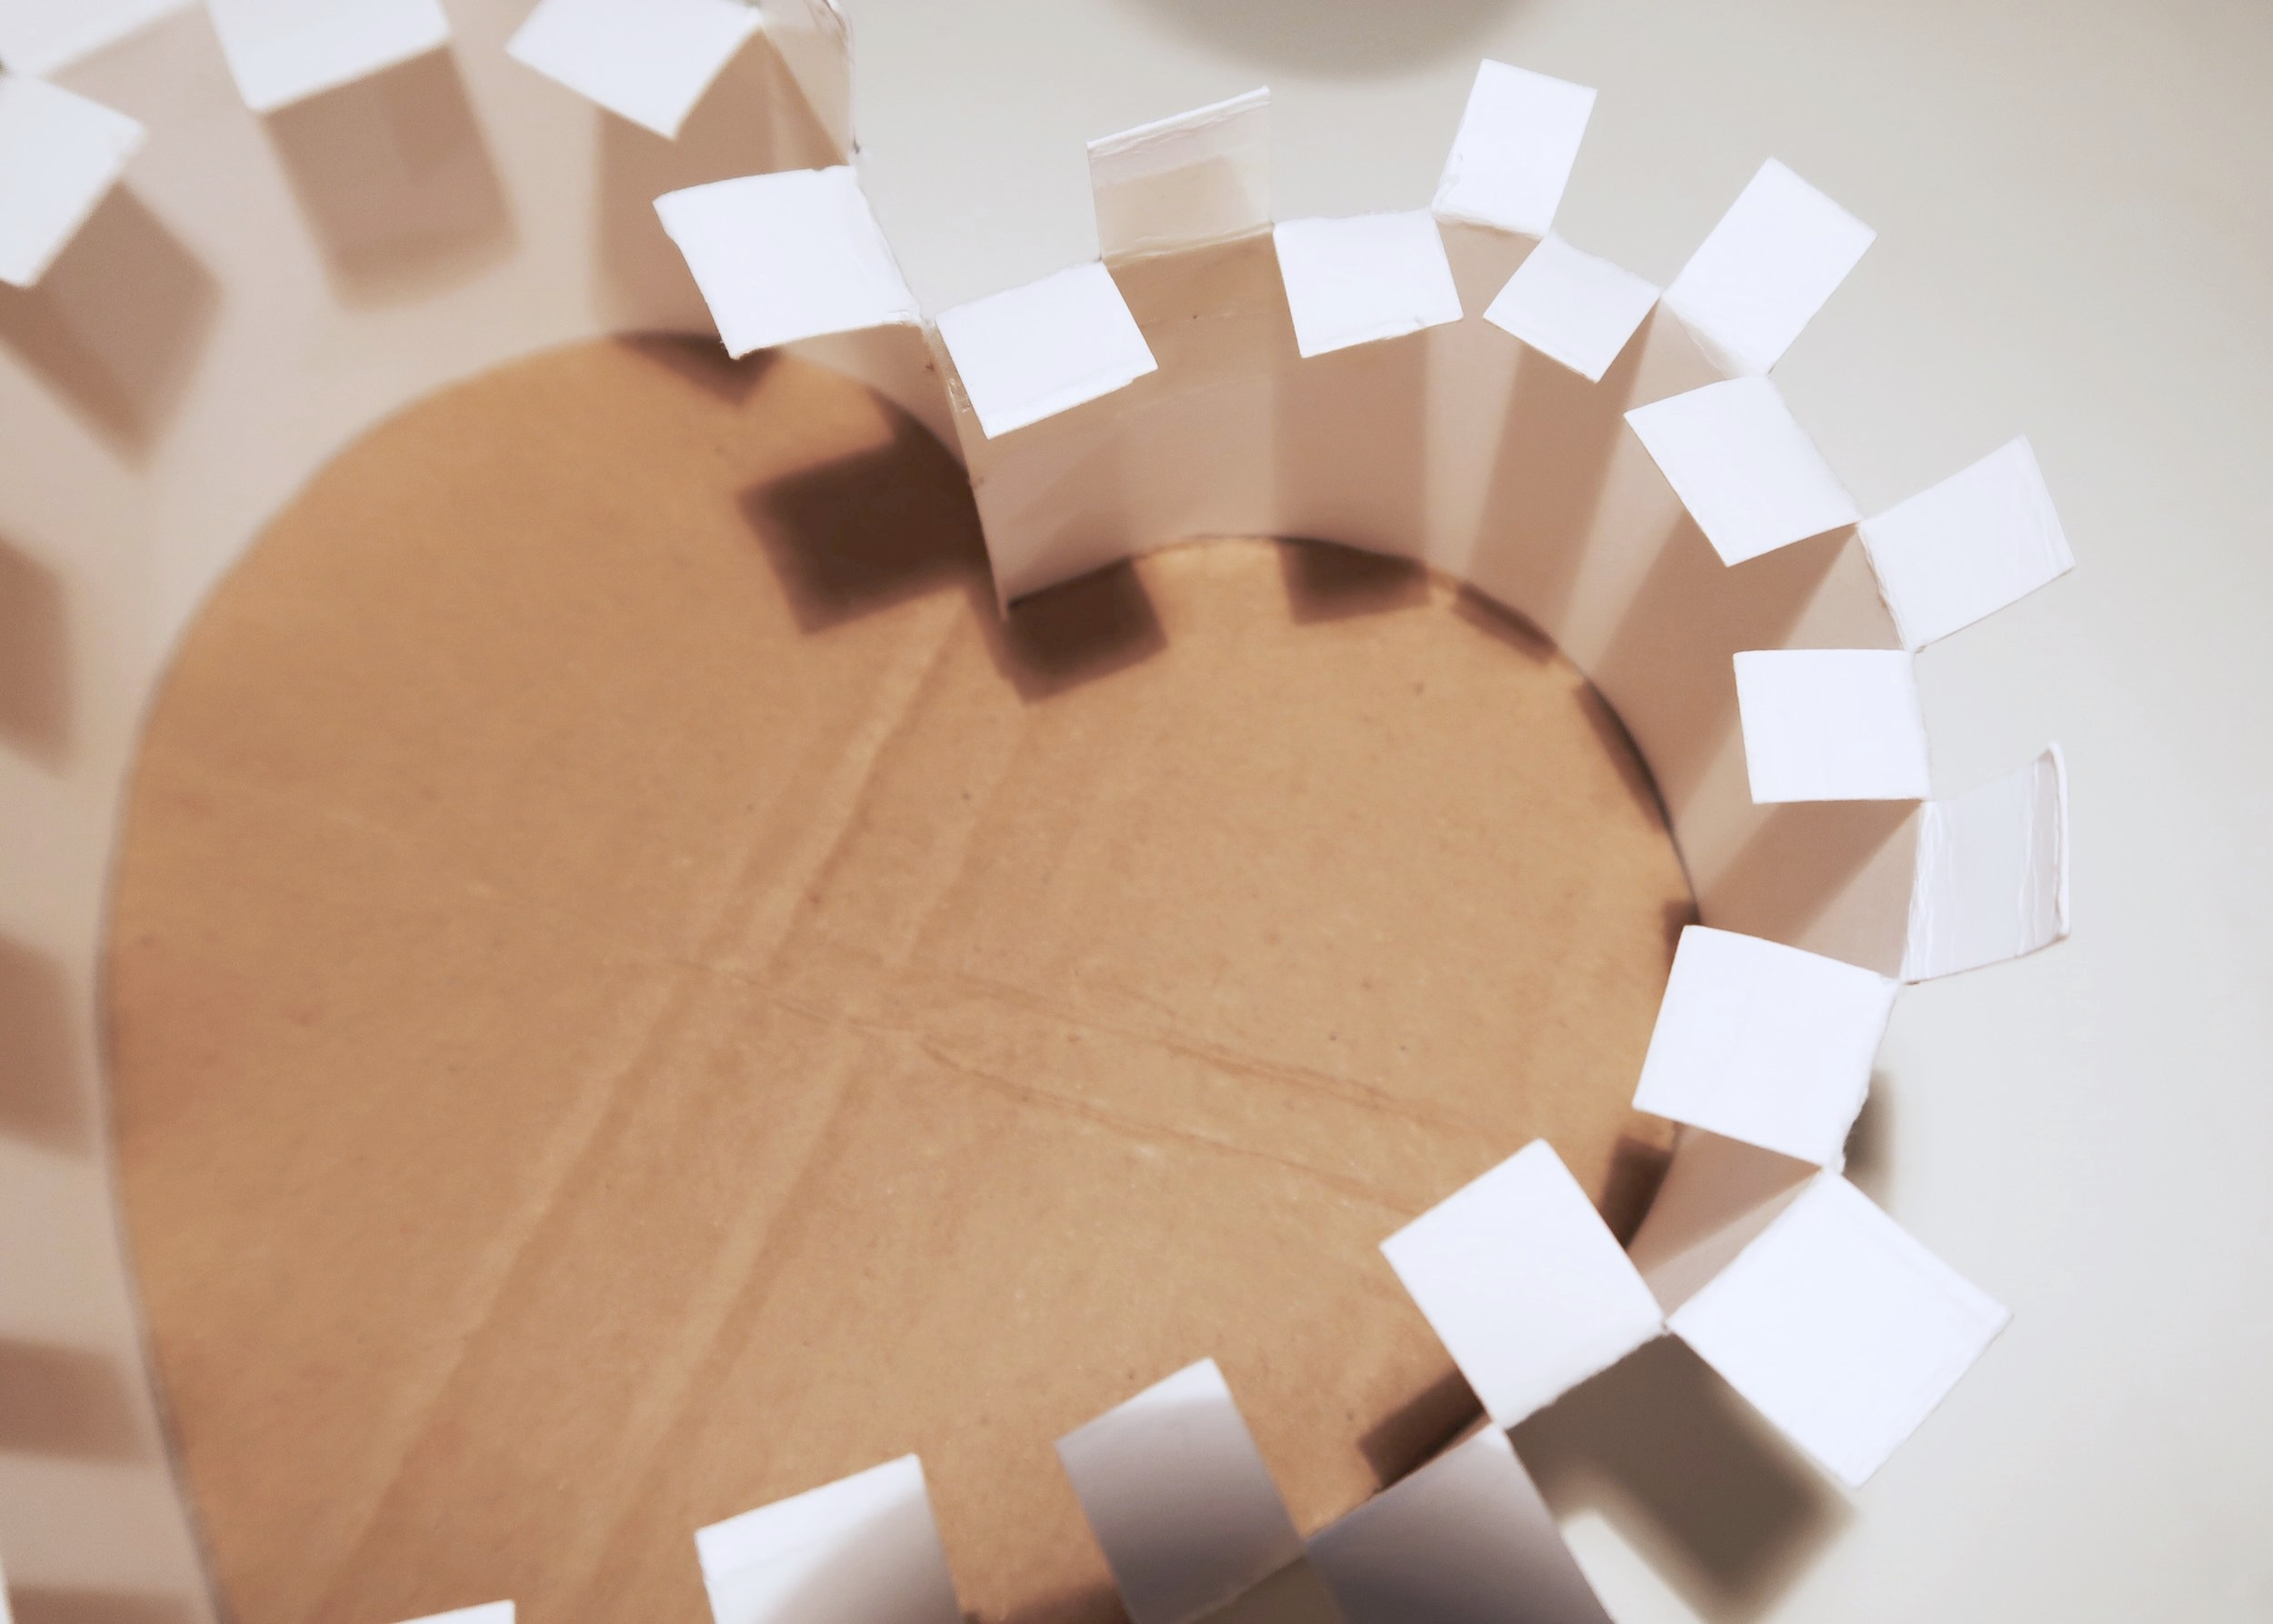 4. - Next, turn your pinata over so that the thinner cardboard sides are facing up. Using a pair of scissors, carefully cut into the sides by about 1cm and at 1cm intervals to form tabs. Fold every other tab towards the centre of the pinata.